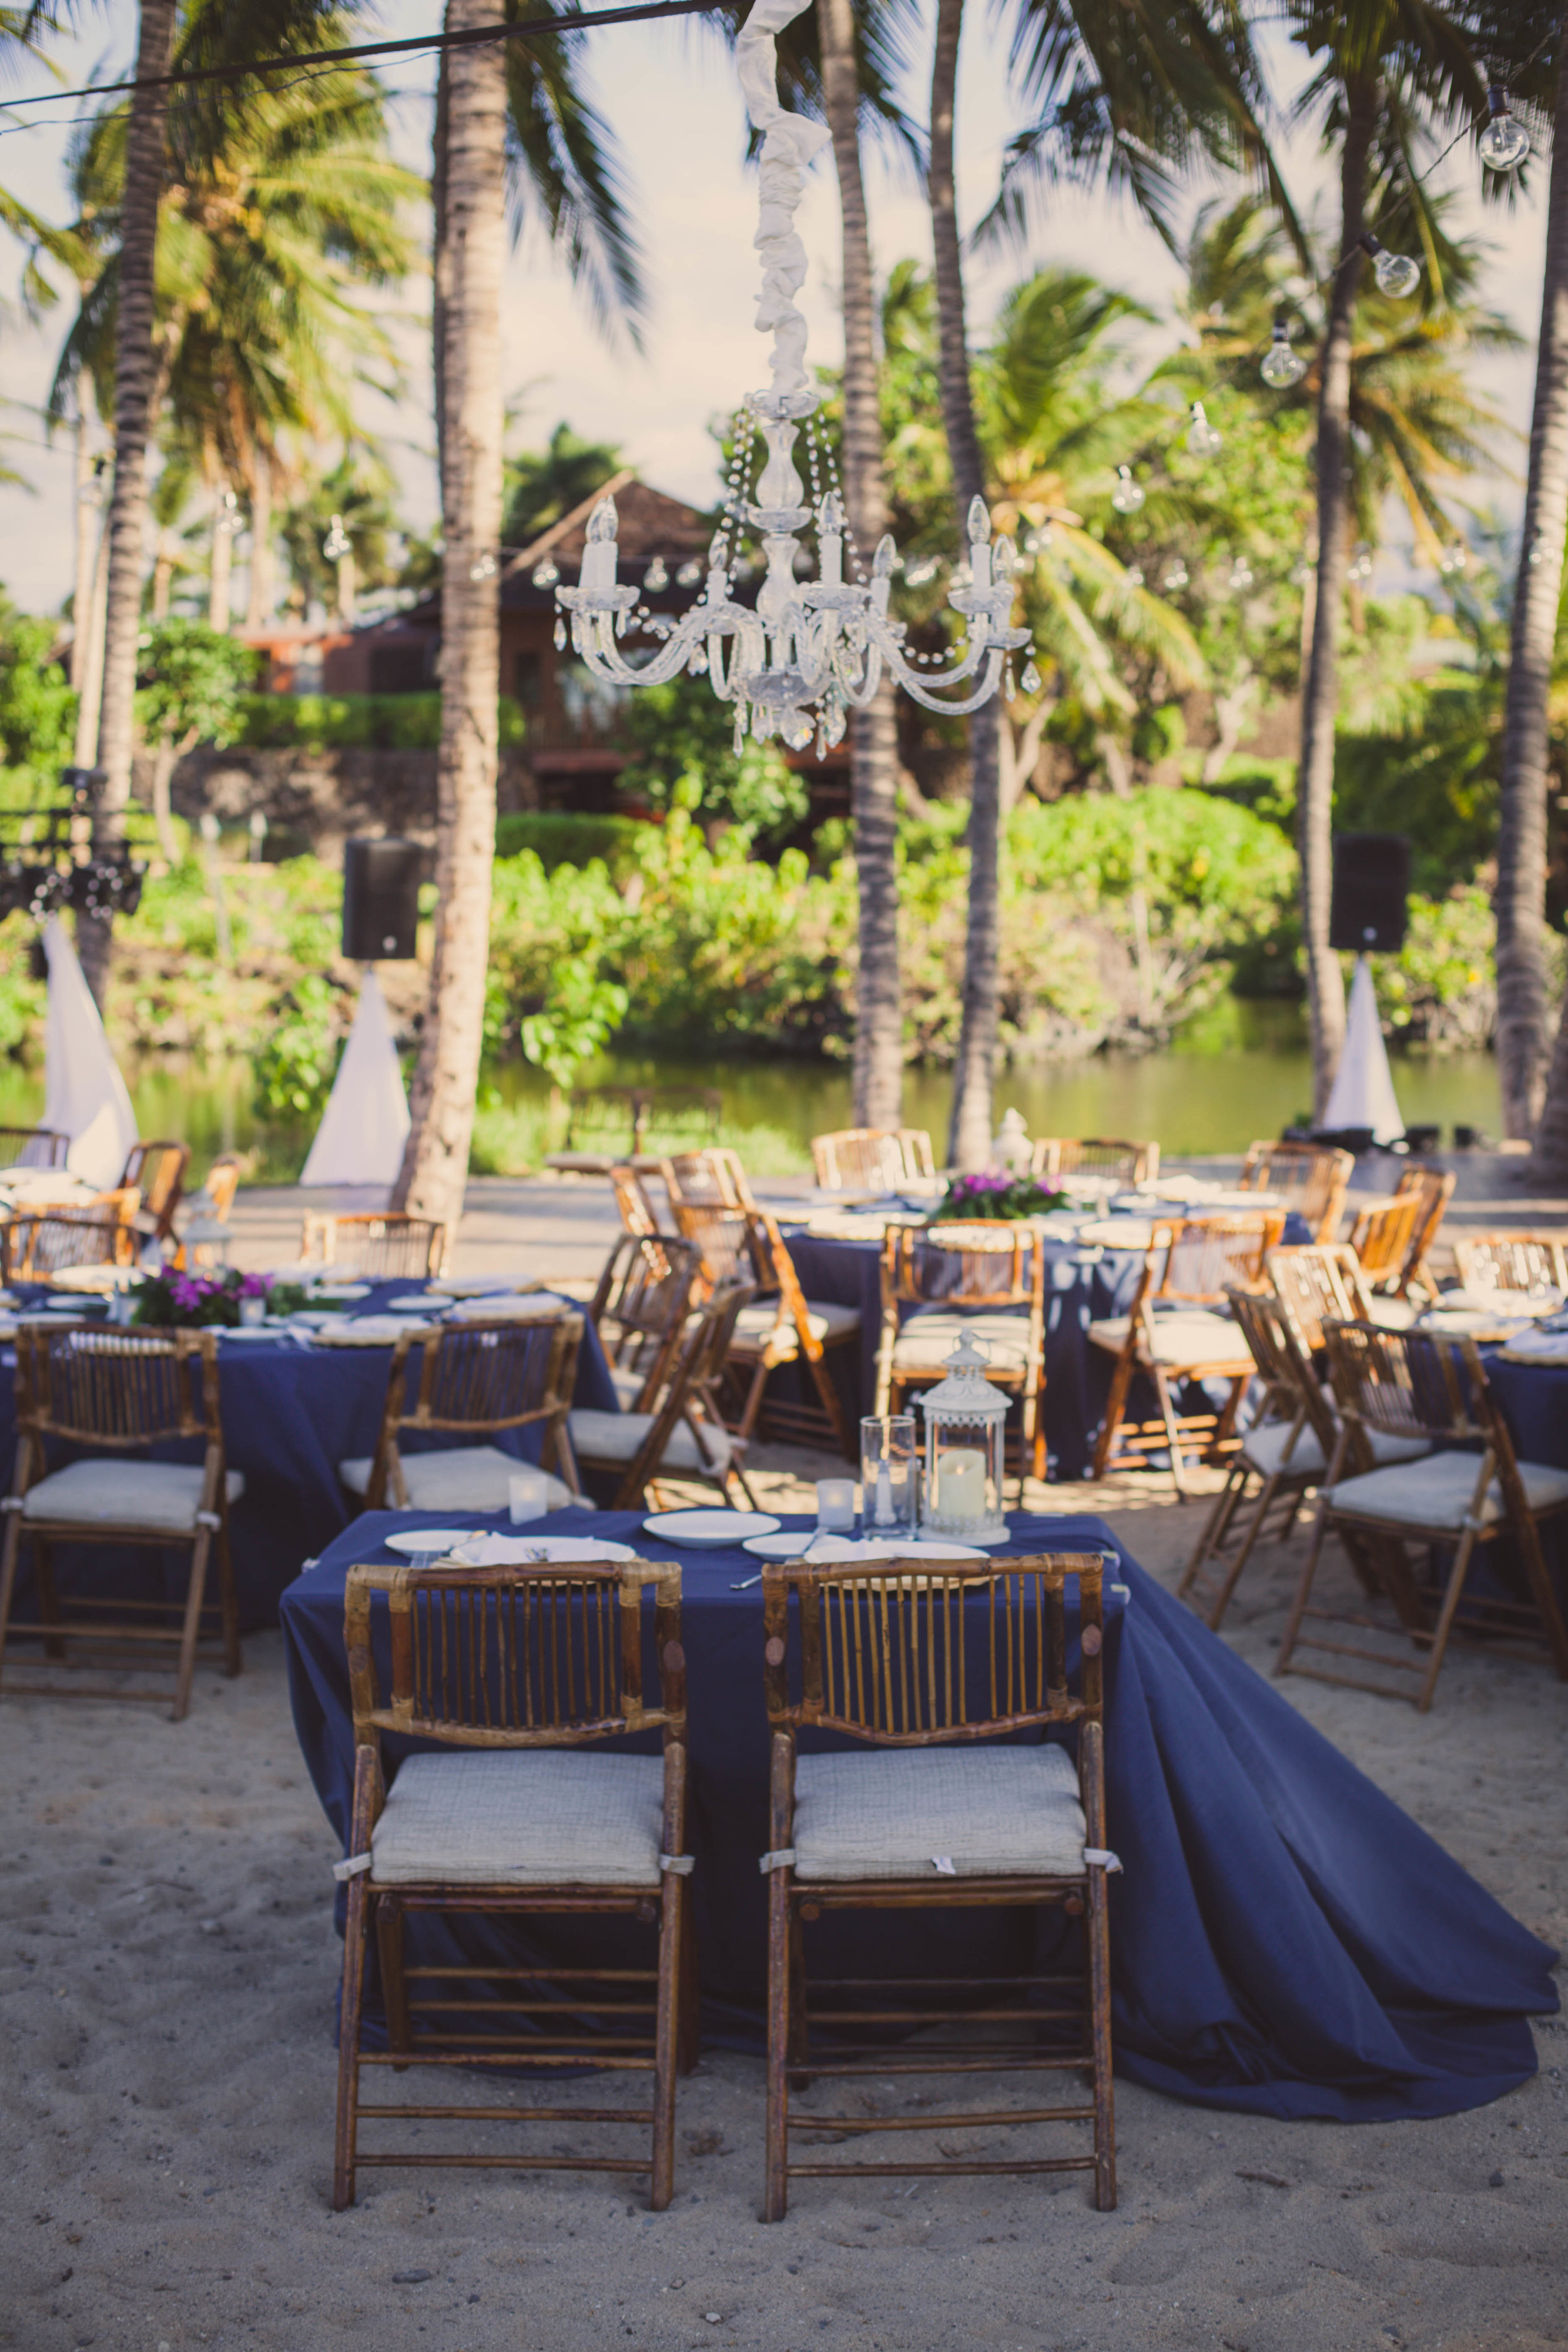 big island hawaii fairmont orchid beach wedding © kelilina photography 20170812171824-1.jpg